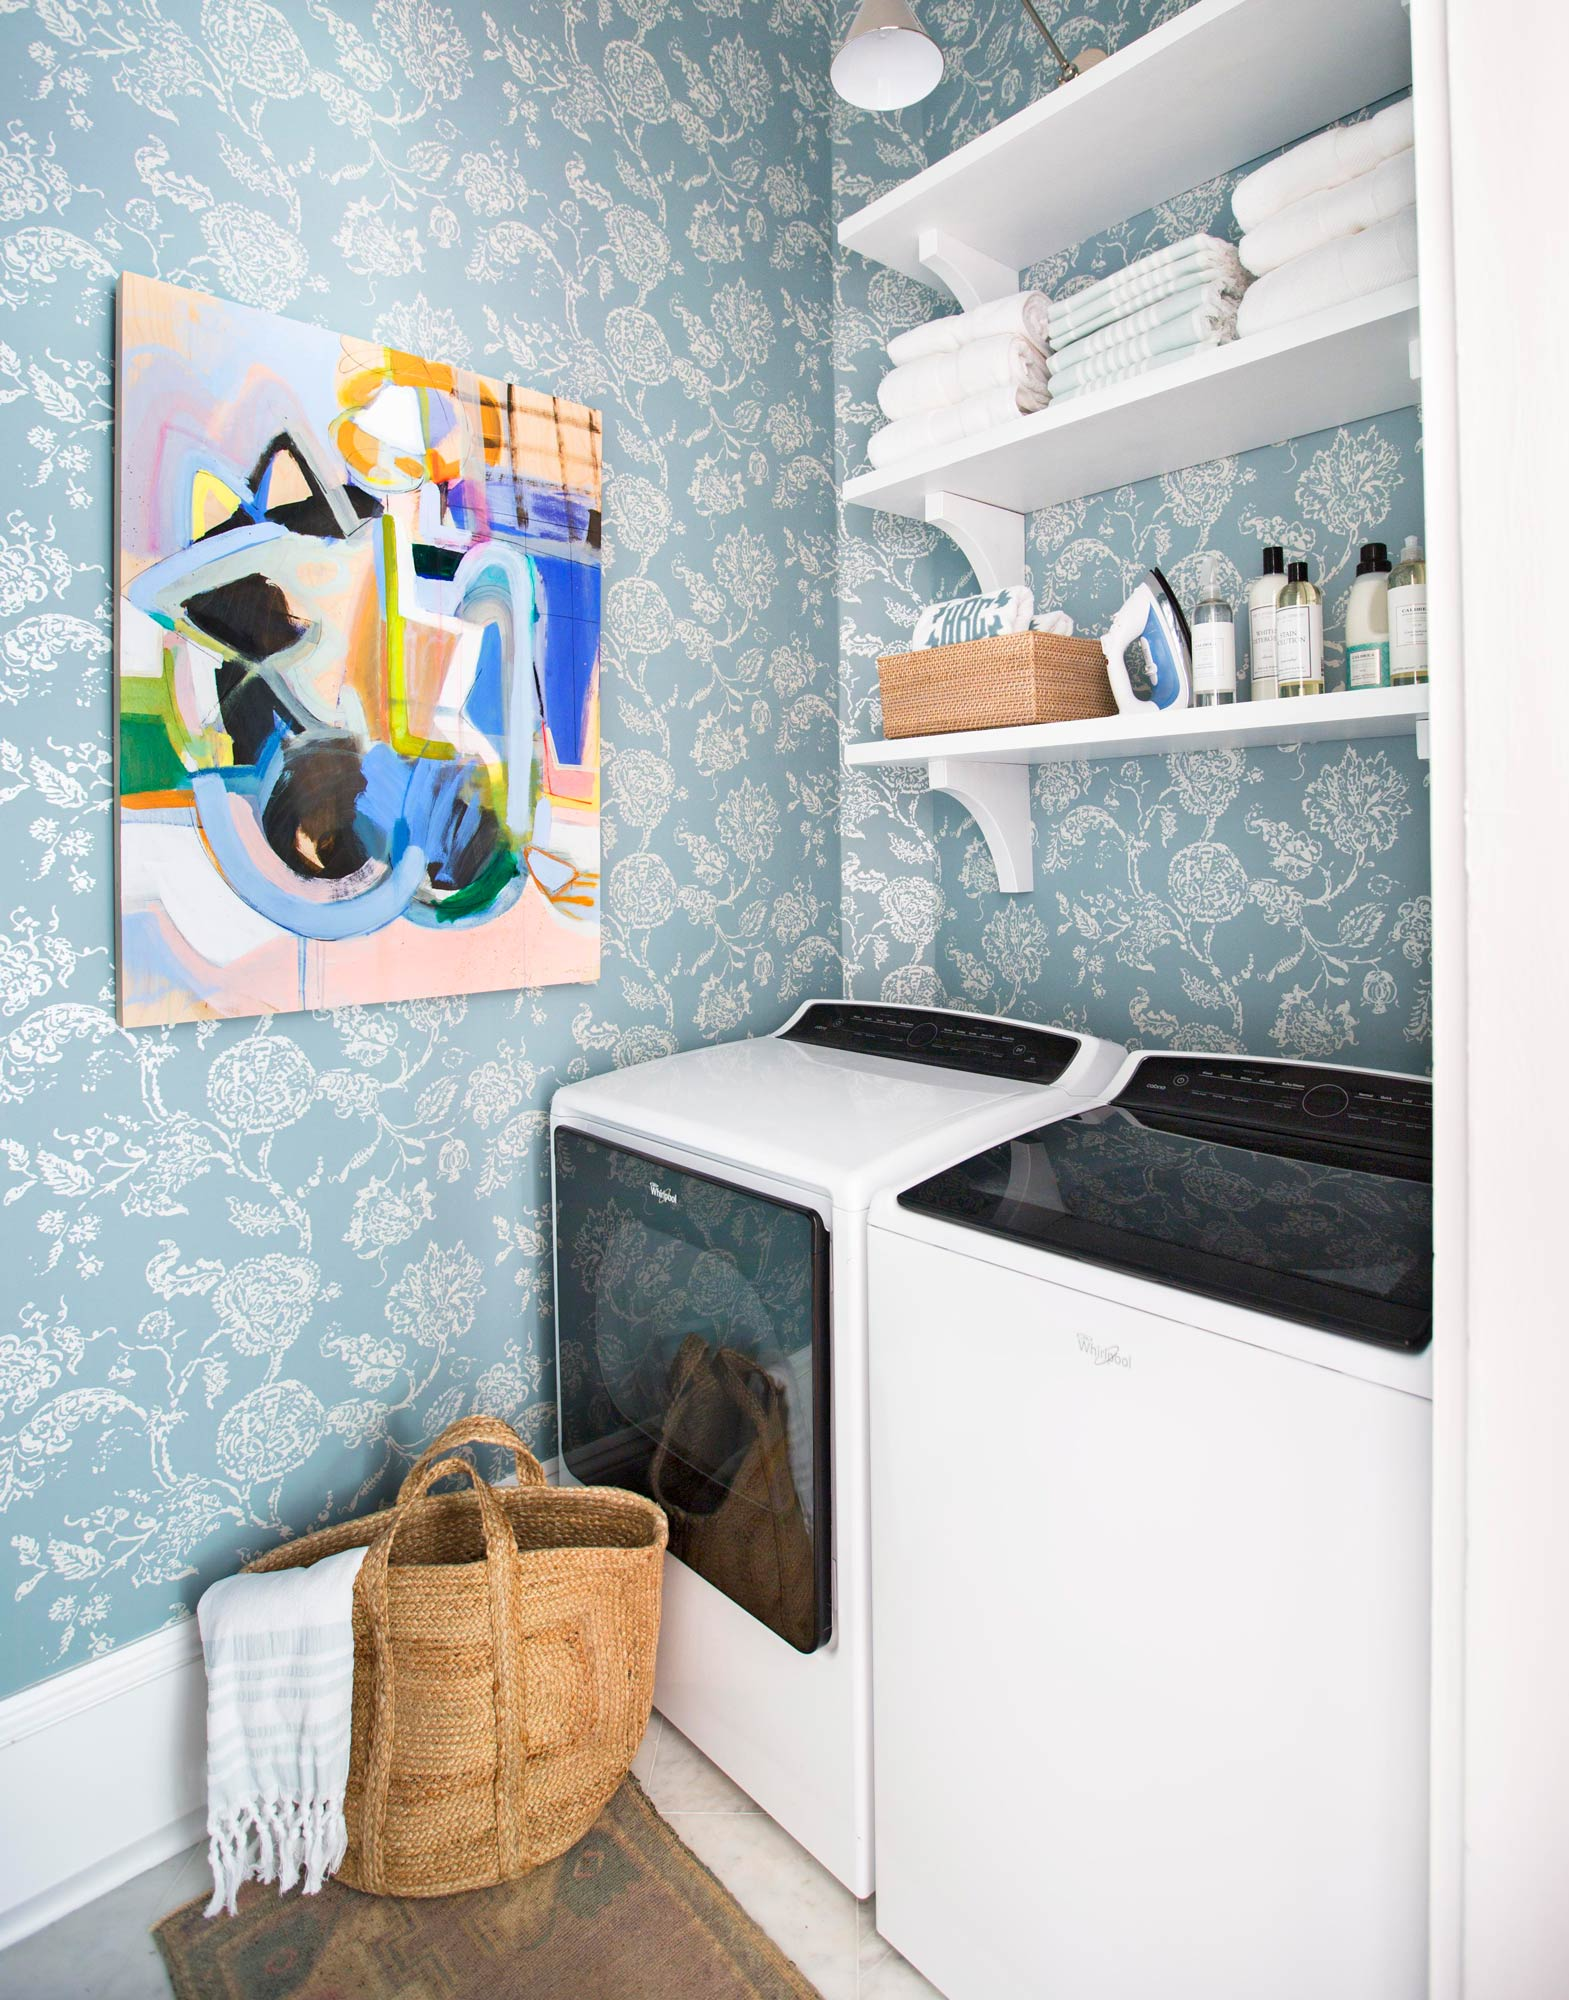 laundry room with shelves above washer and dryer